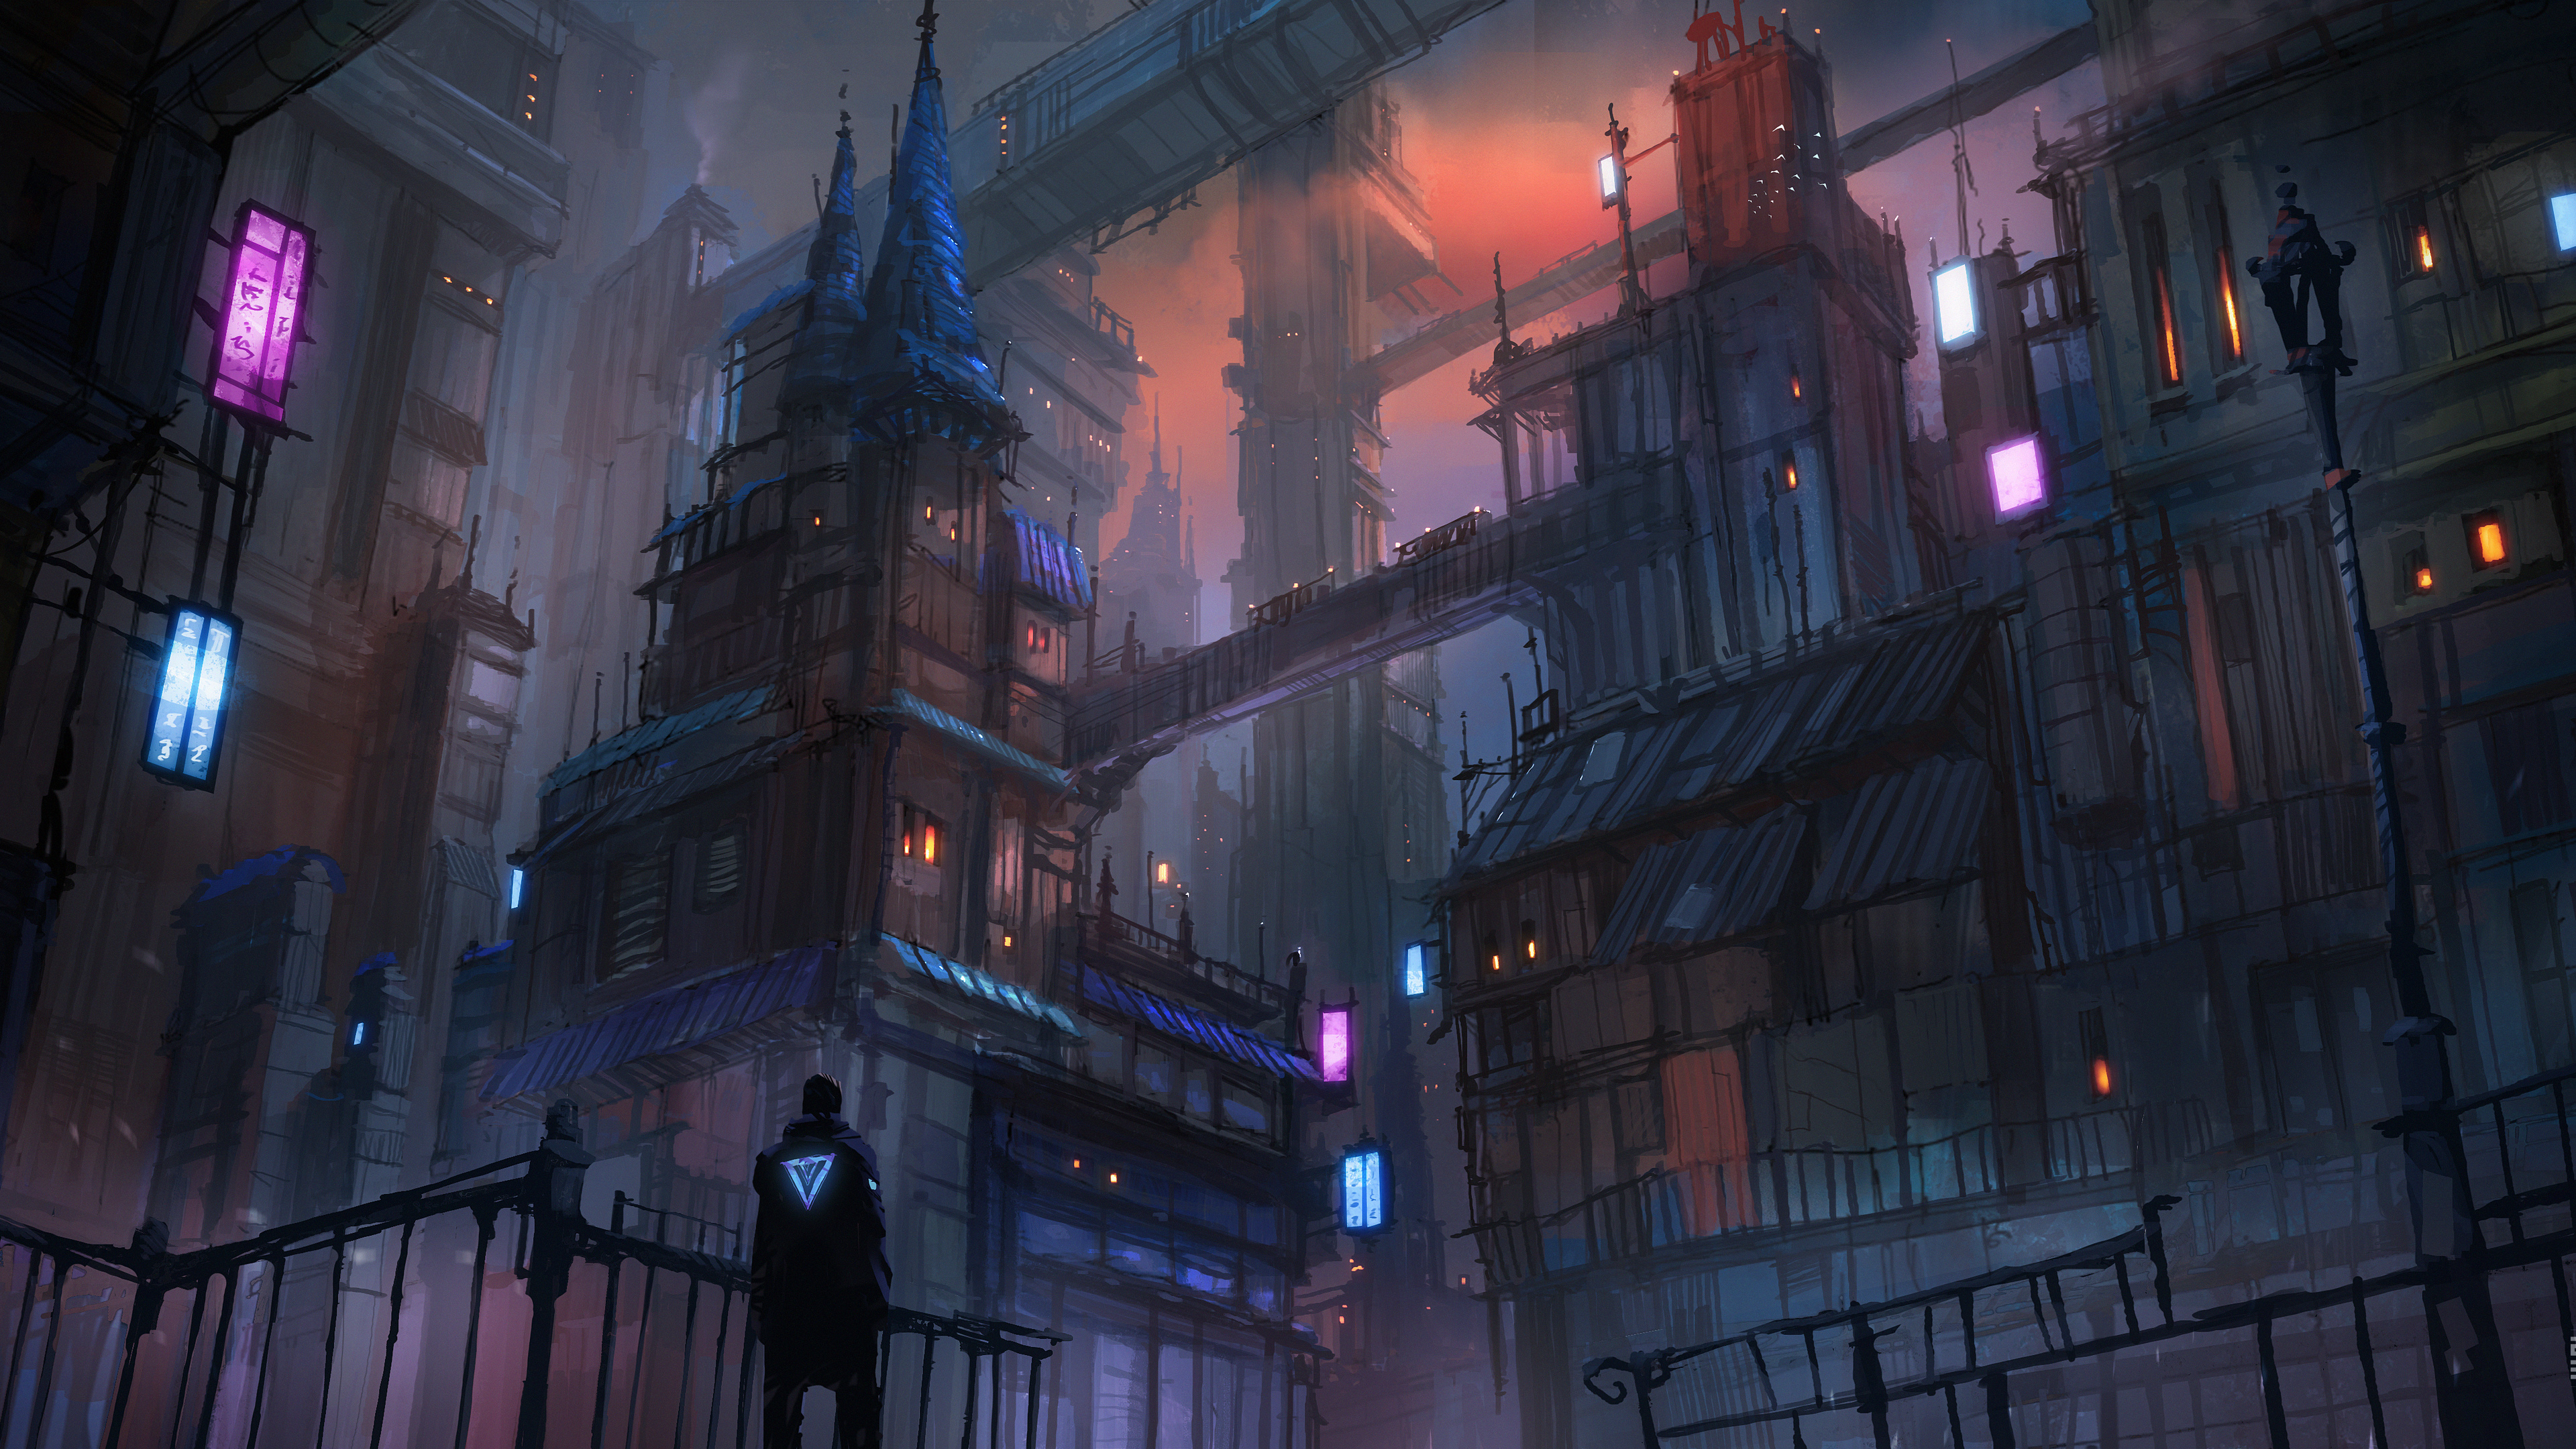 cyberpunk city evening mood 4k 1551642869 - Cyberpunk City Evening Mood 4k - hd-wallpapers, digital art wallpapers, deviantart wallpapers, cyberpunk wallpapers, city wallpapers, artwork wallpapers, artist wallpapers, 5k wallpapers, 4k-wallpapers